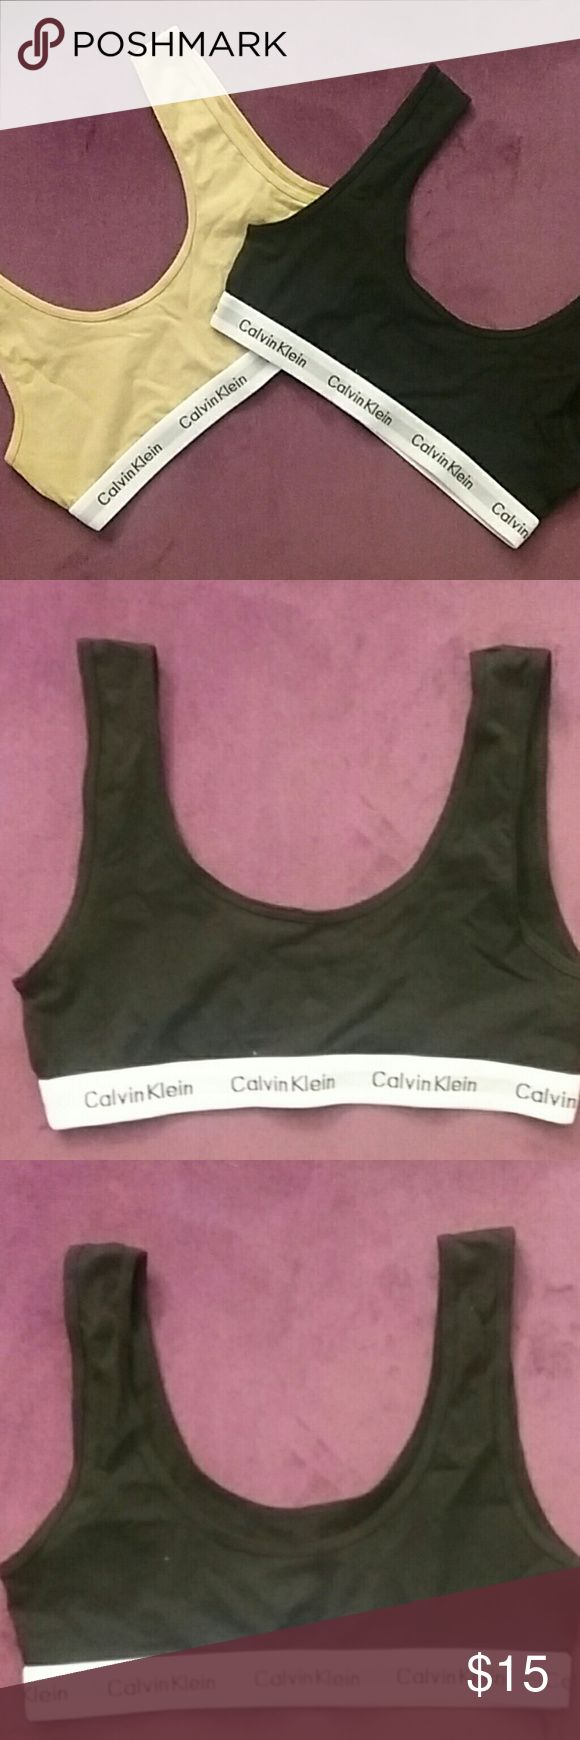 Calvin Klein Sports / Training Bra NWOT Two Calvin Klein training/sports bras. One black, one tan/nude. Willing to sell together or separately. Price listed is for both together. Bought these thinking they were for adults, but they're actually for little girls. Might fit an adult with a smaller bust though. Calvin Klein Other